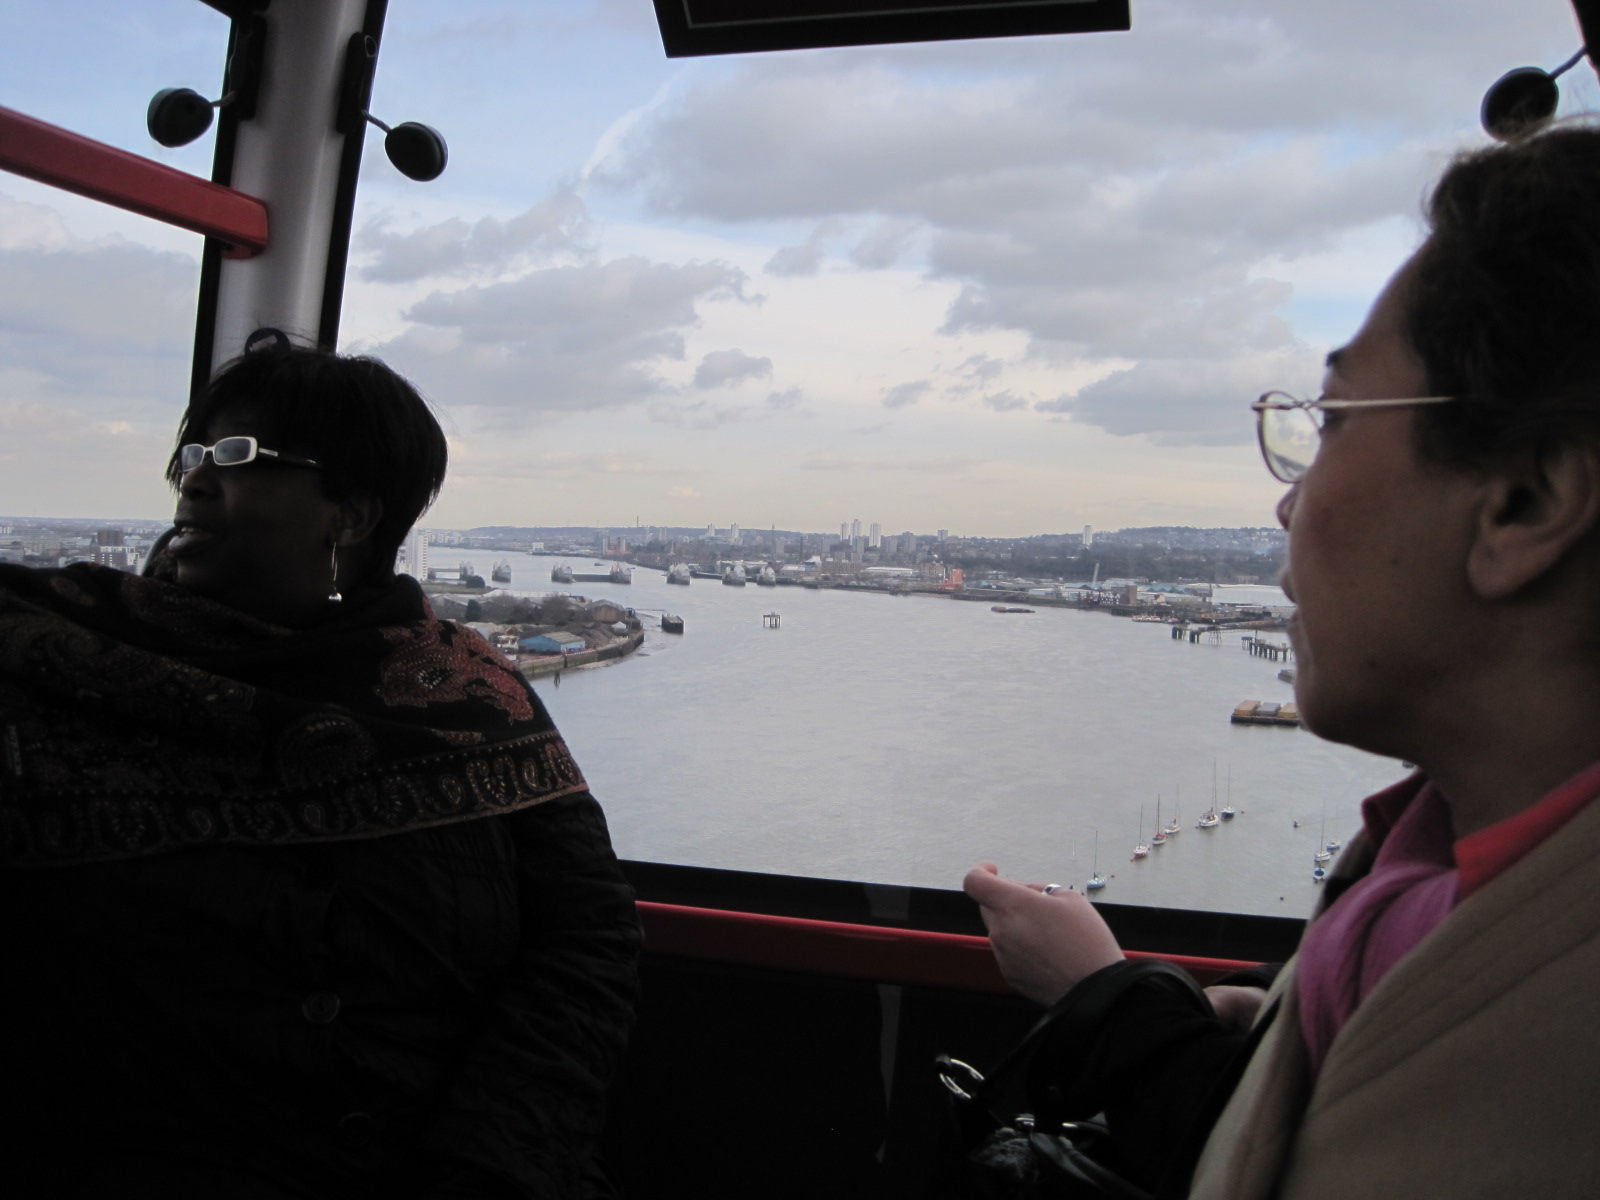 on the Emirates Air Line - photo by Juliamaud